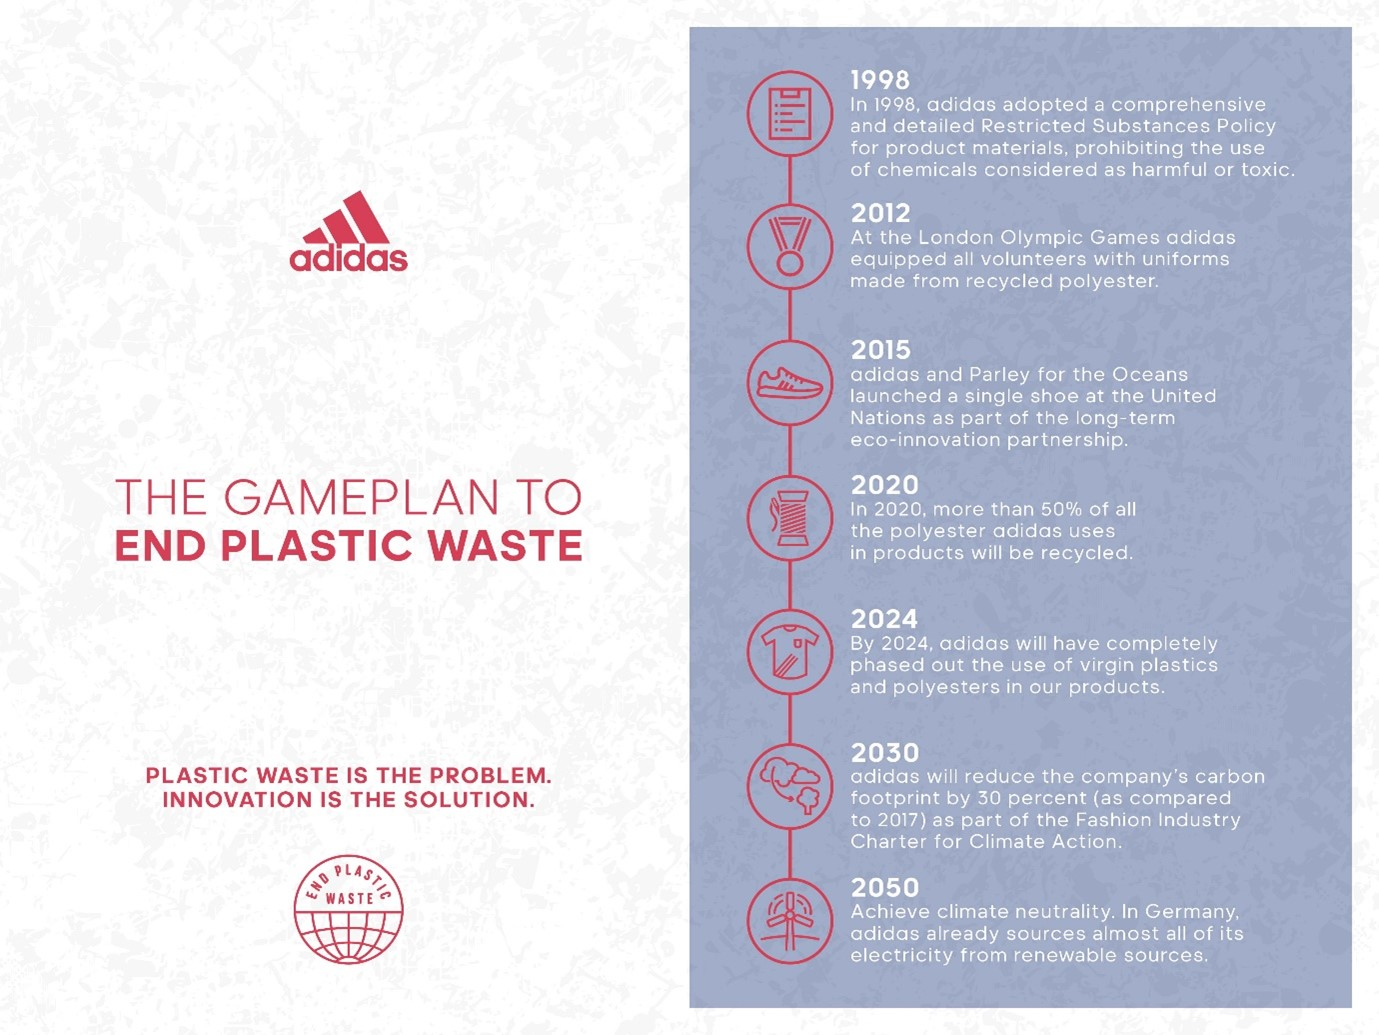 Addidas time line of sustainable development